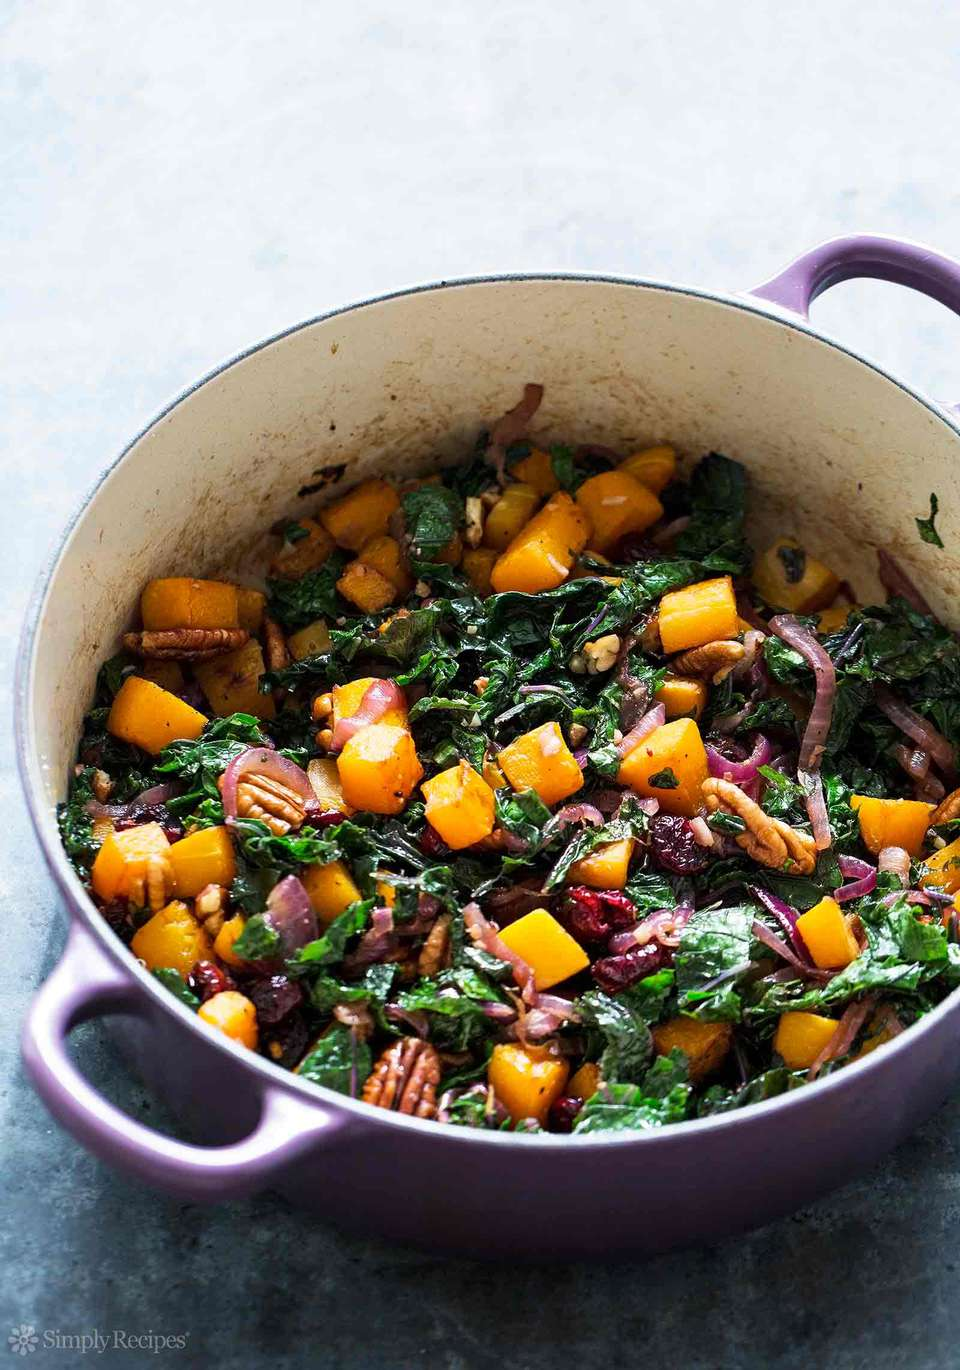 Roasted Butternut Squash Sauté